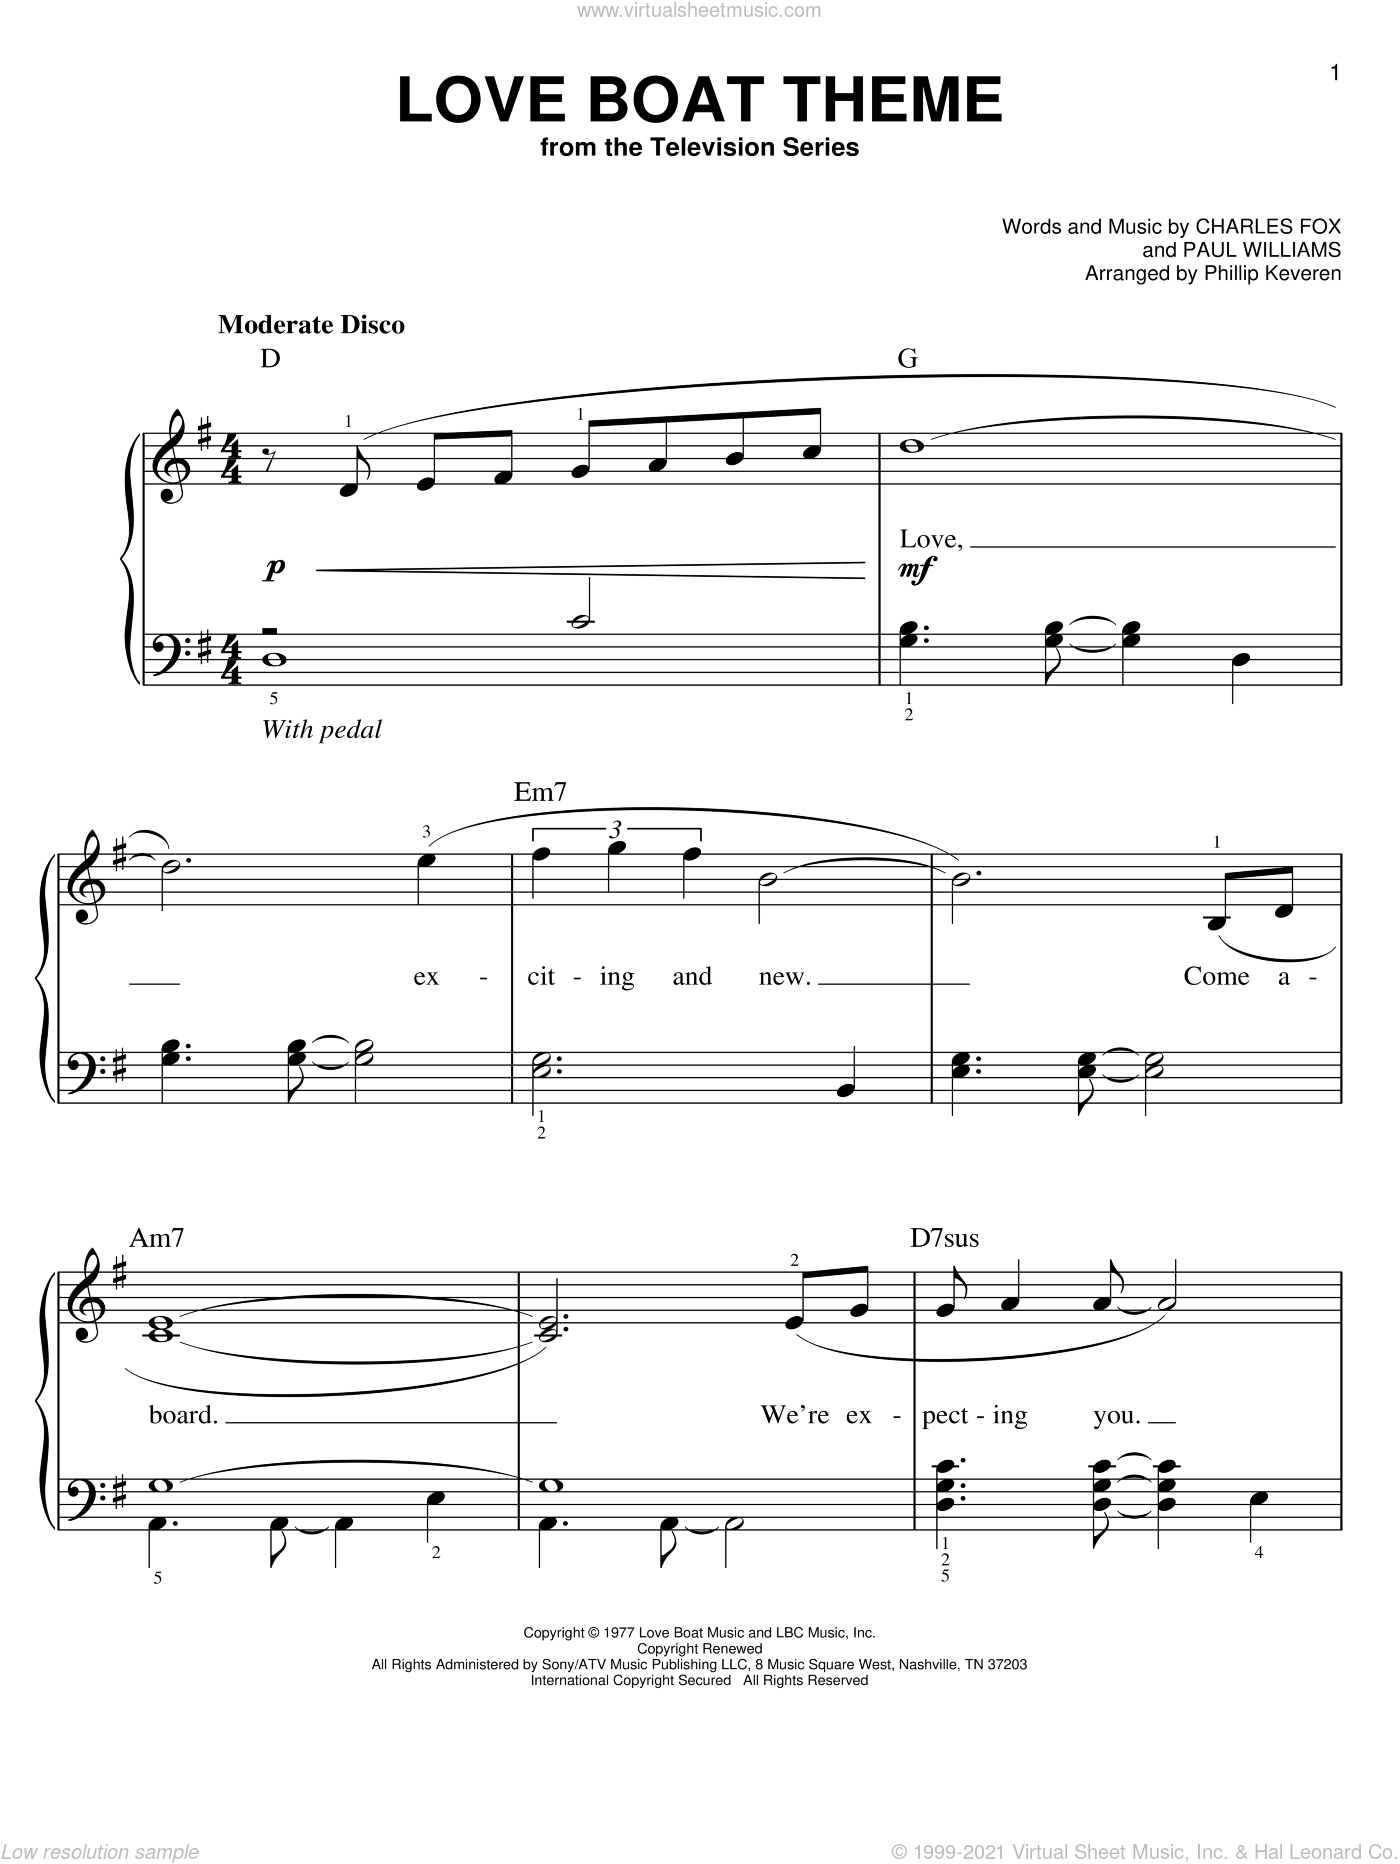 Love Boat Theme, (easy) sheet music for piano solo by Charles Fox, Phillip Keveren and Paul Williams, easy skill level